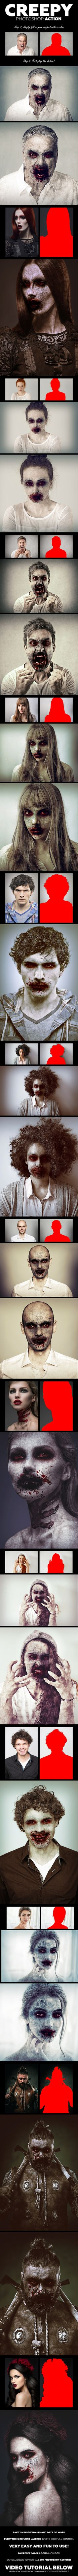 #Creepy #Photoshop Action - #Photo Effects Actions